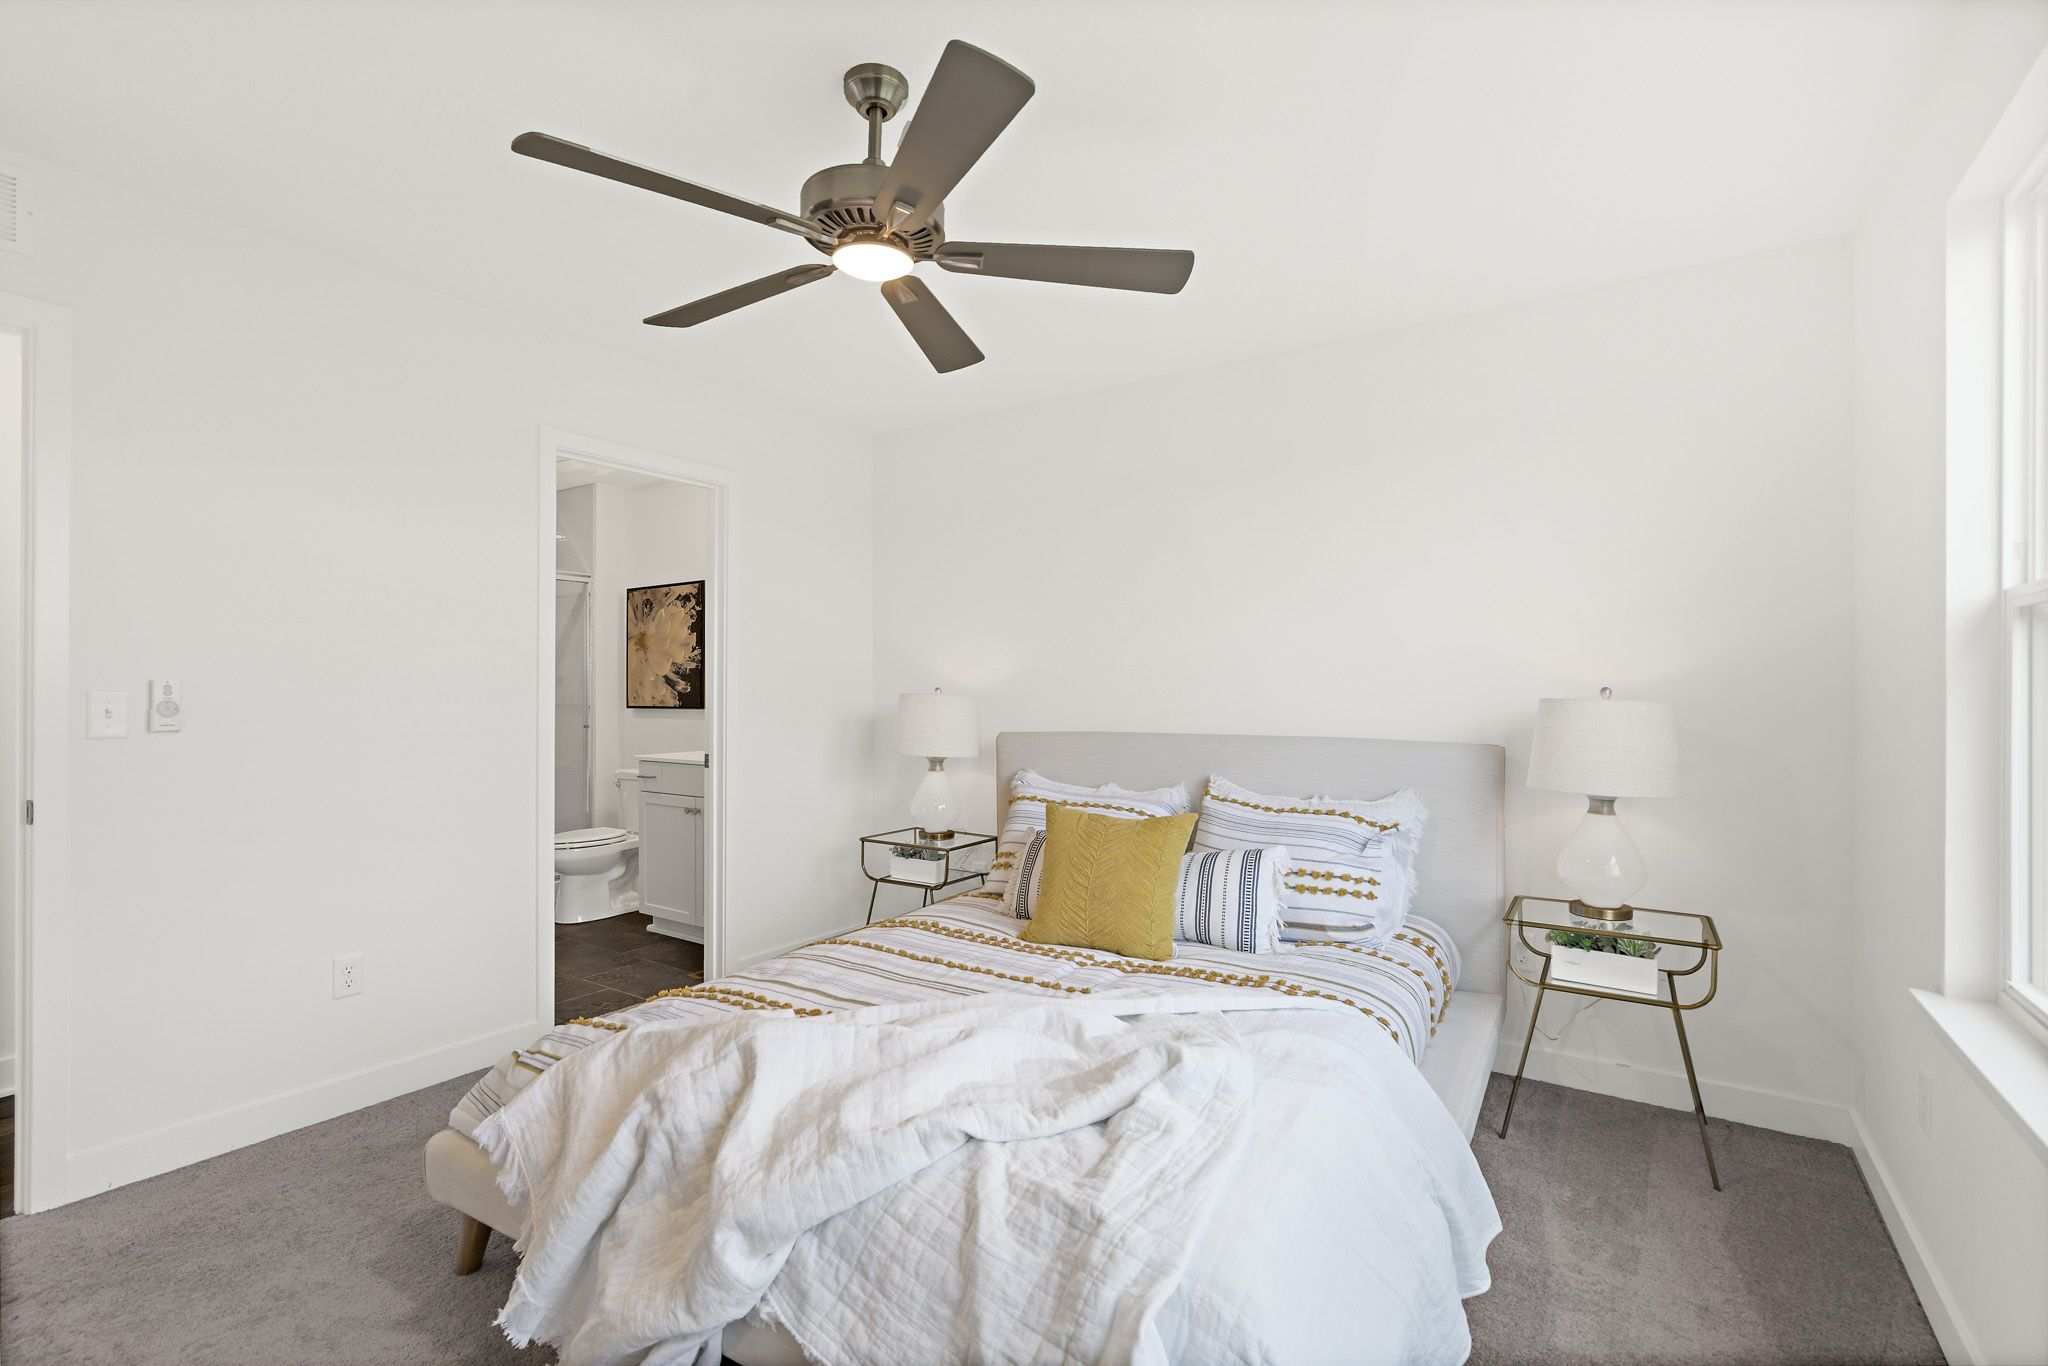 Bedroom featured in the sapphire By clover & hive in Des Moines, IA